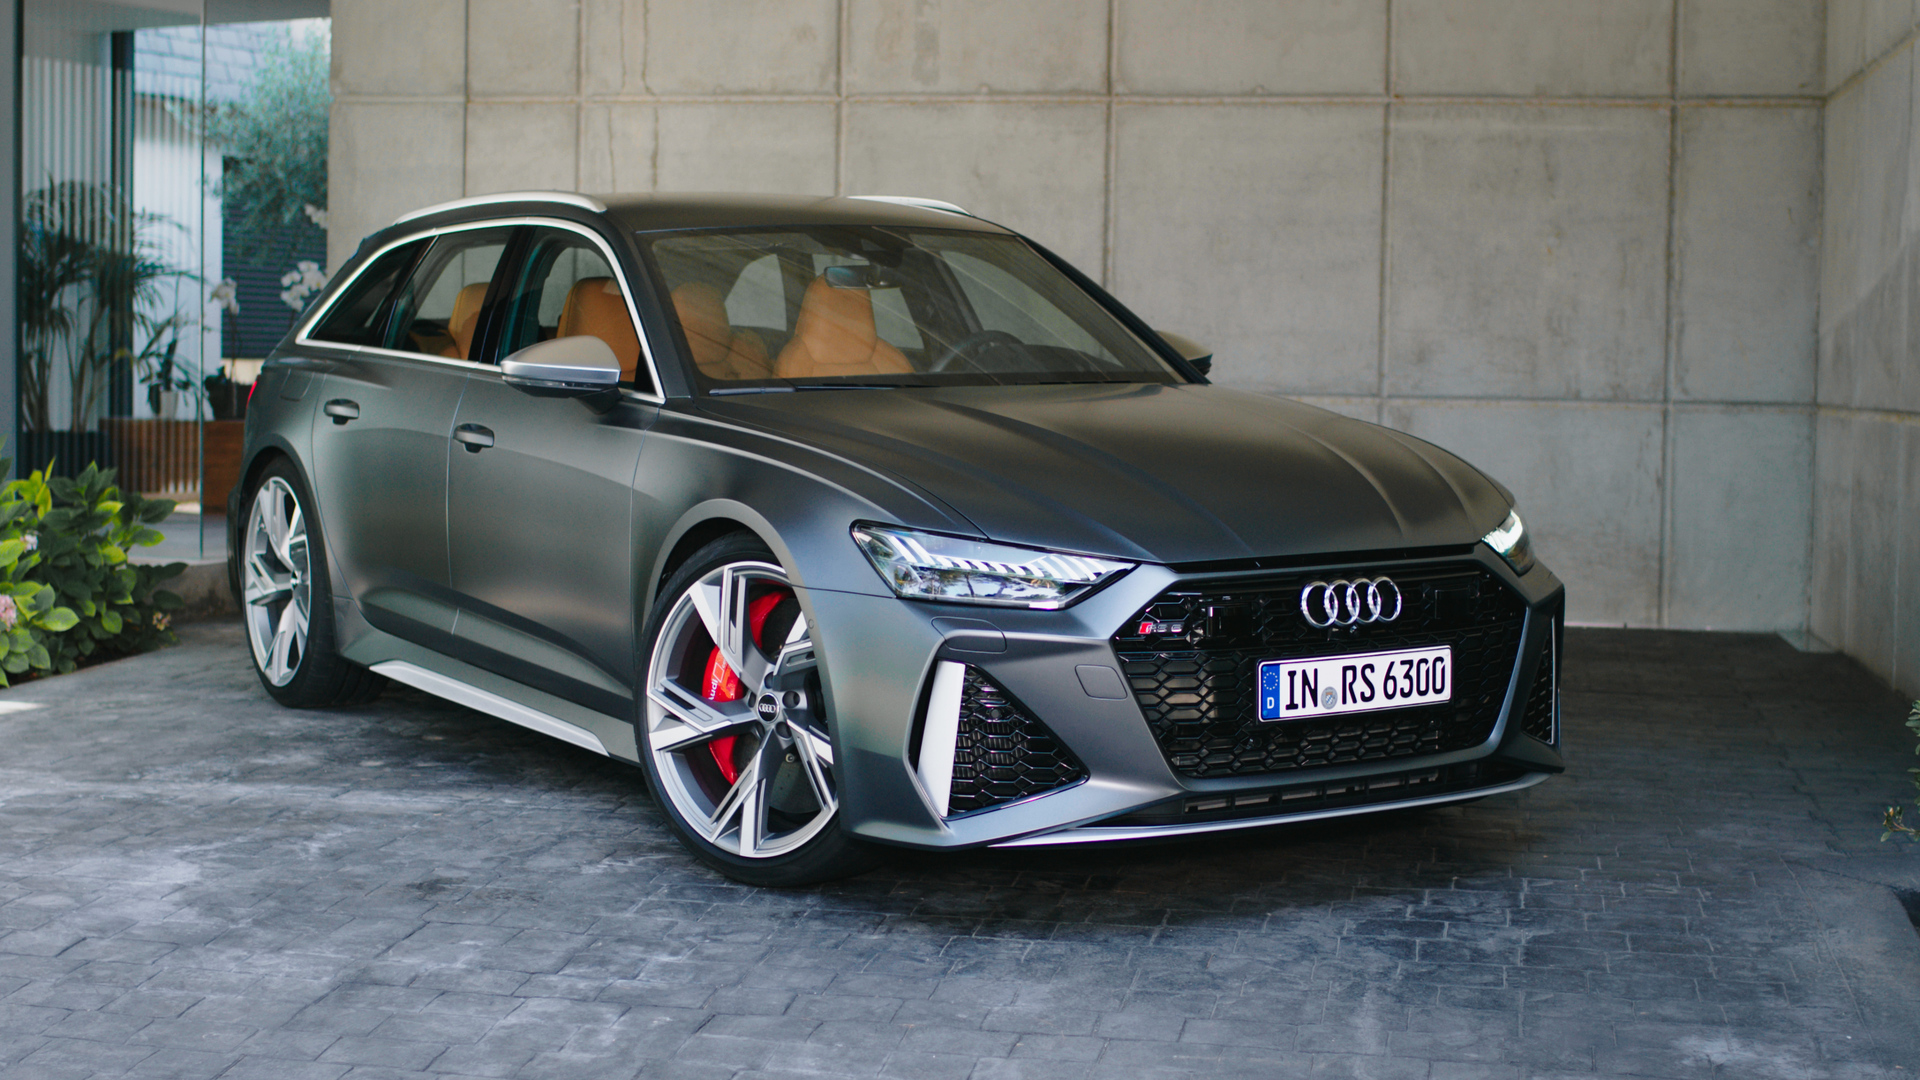 Understatement for aficionados – Audi RS 6 Avant and Audi RS 7 Sportback